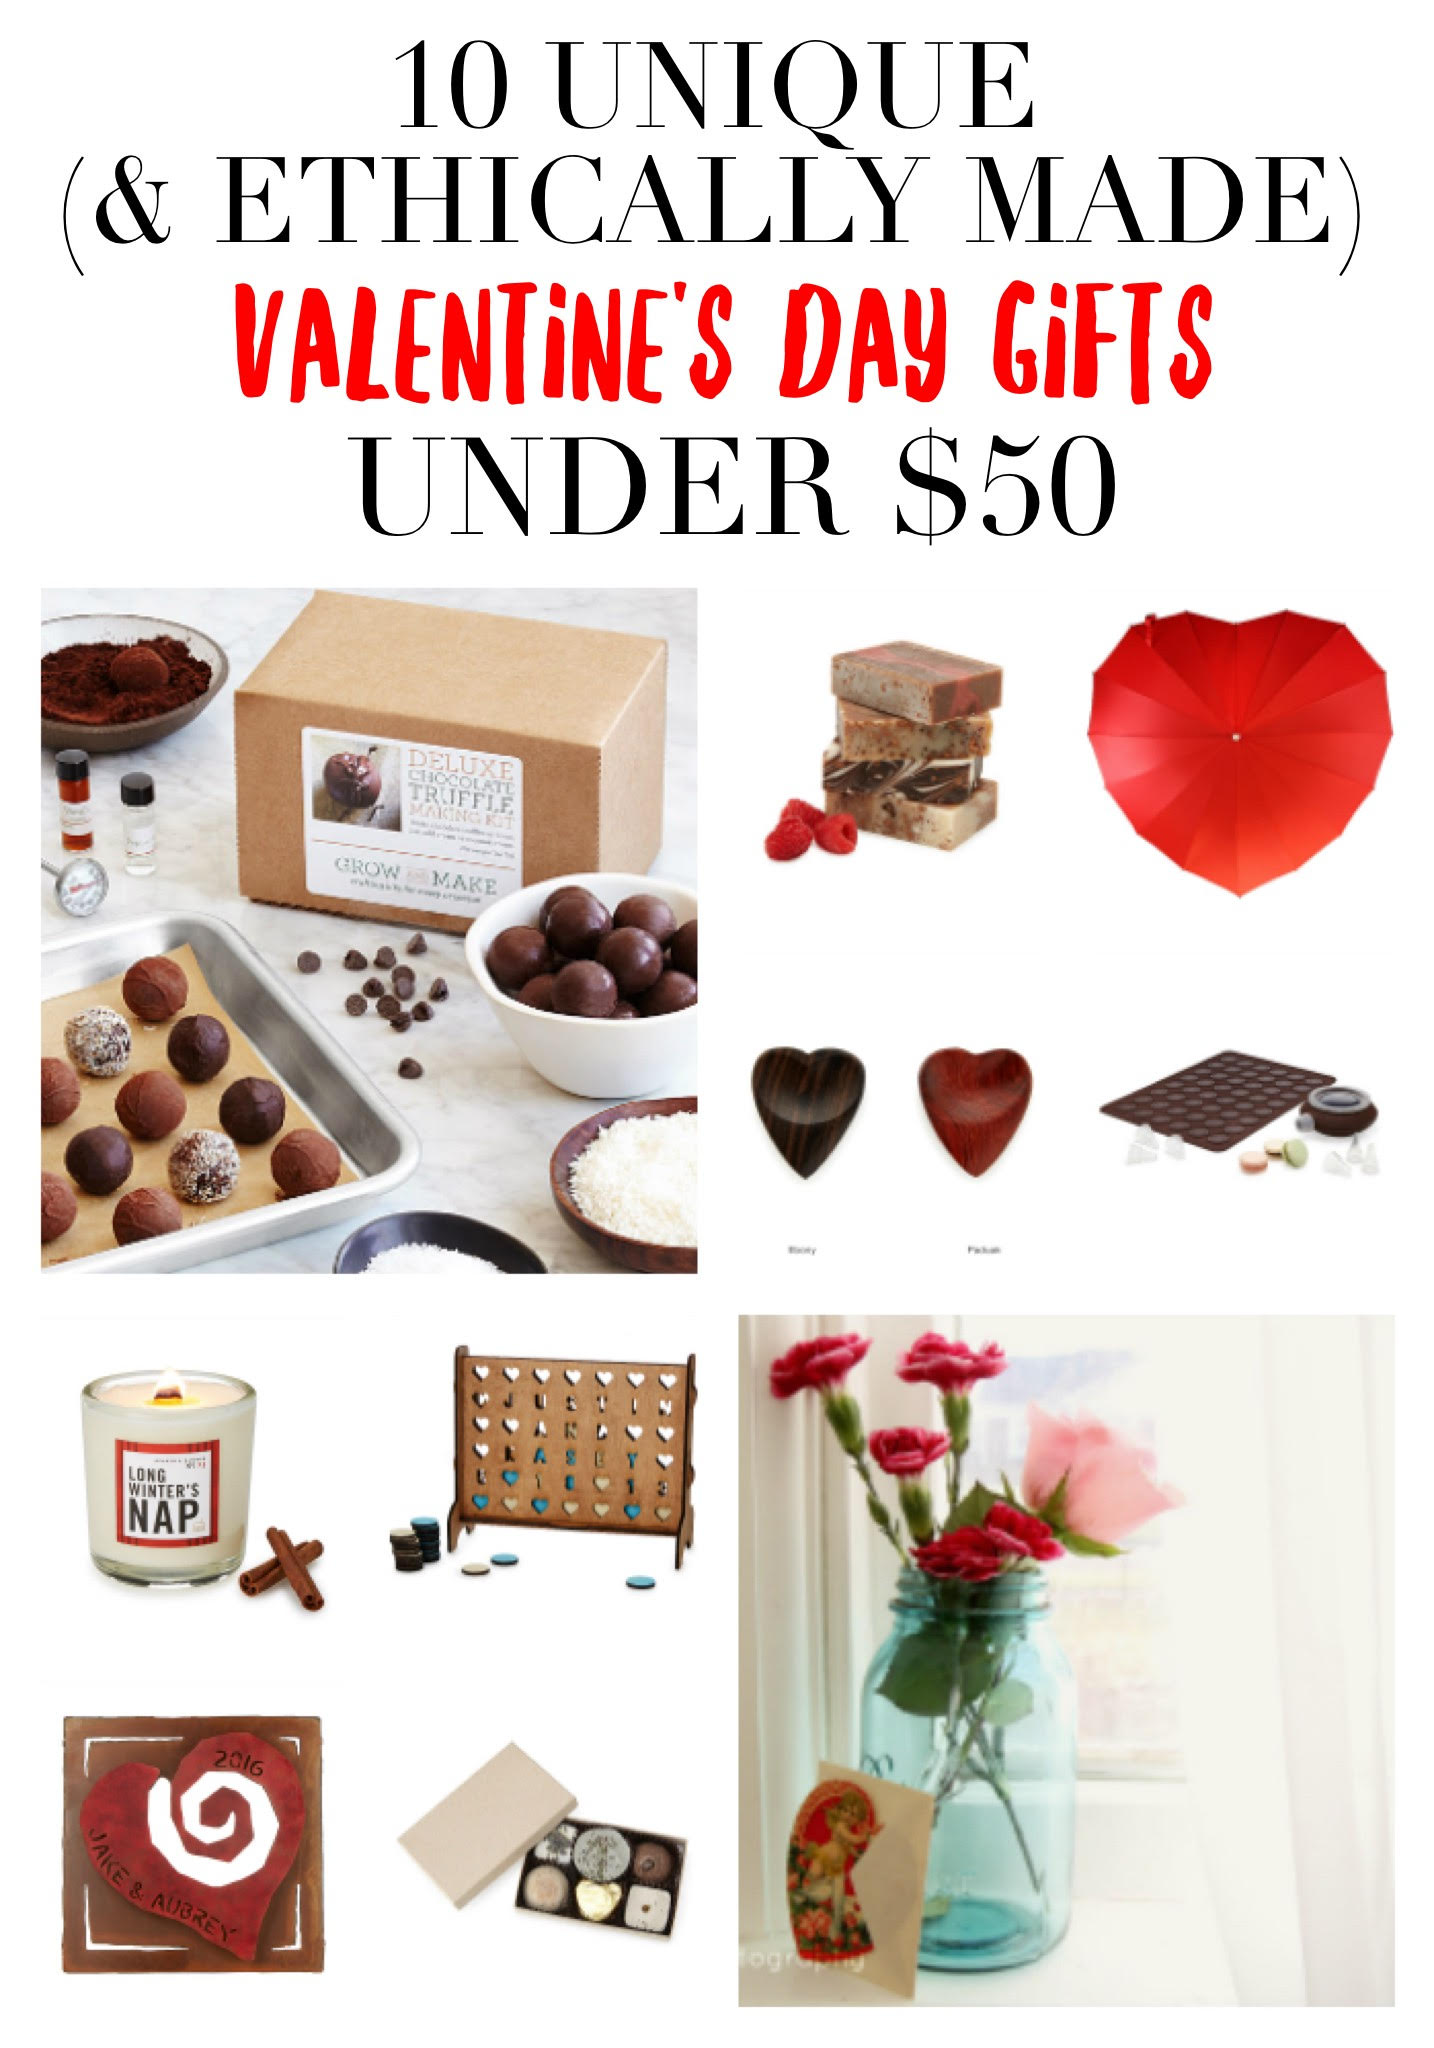 10 totally awesome + ethically made valentine's day gifts under $50